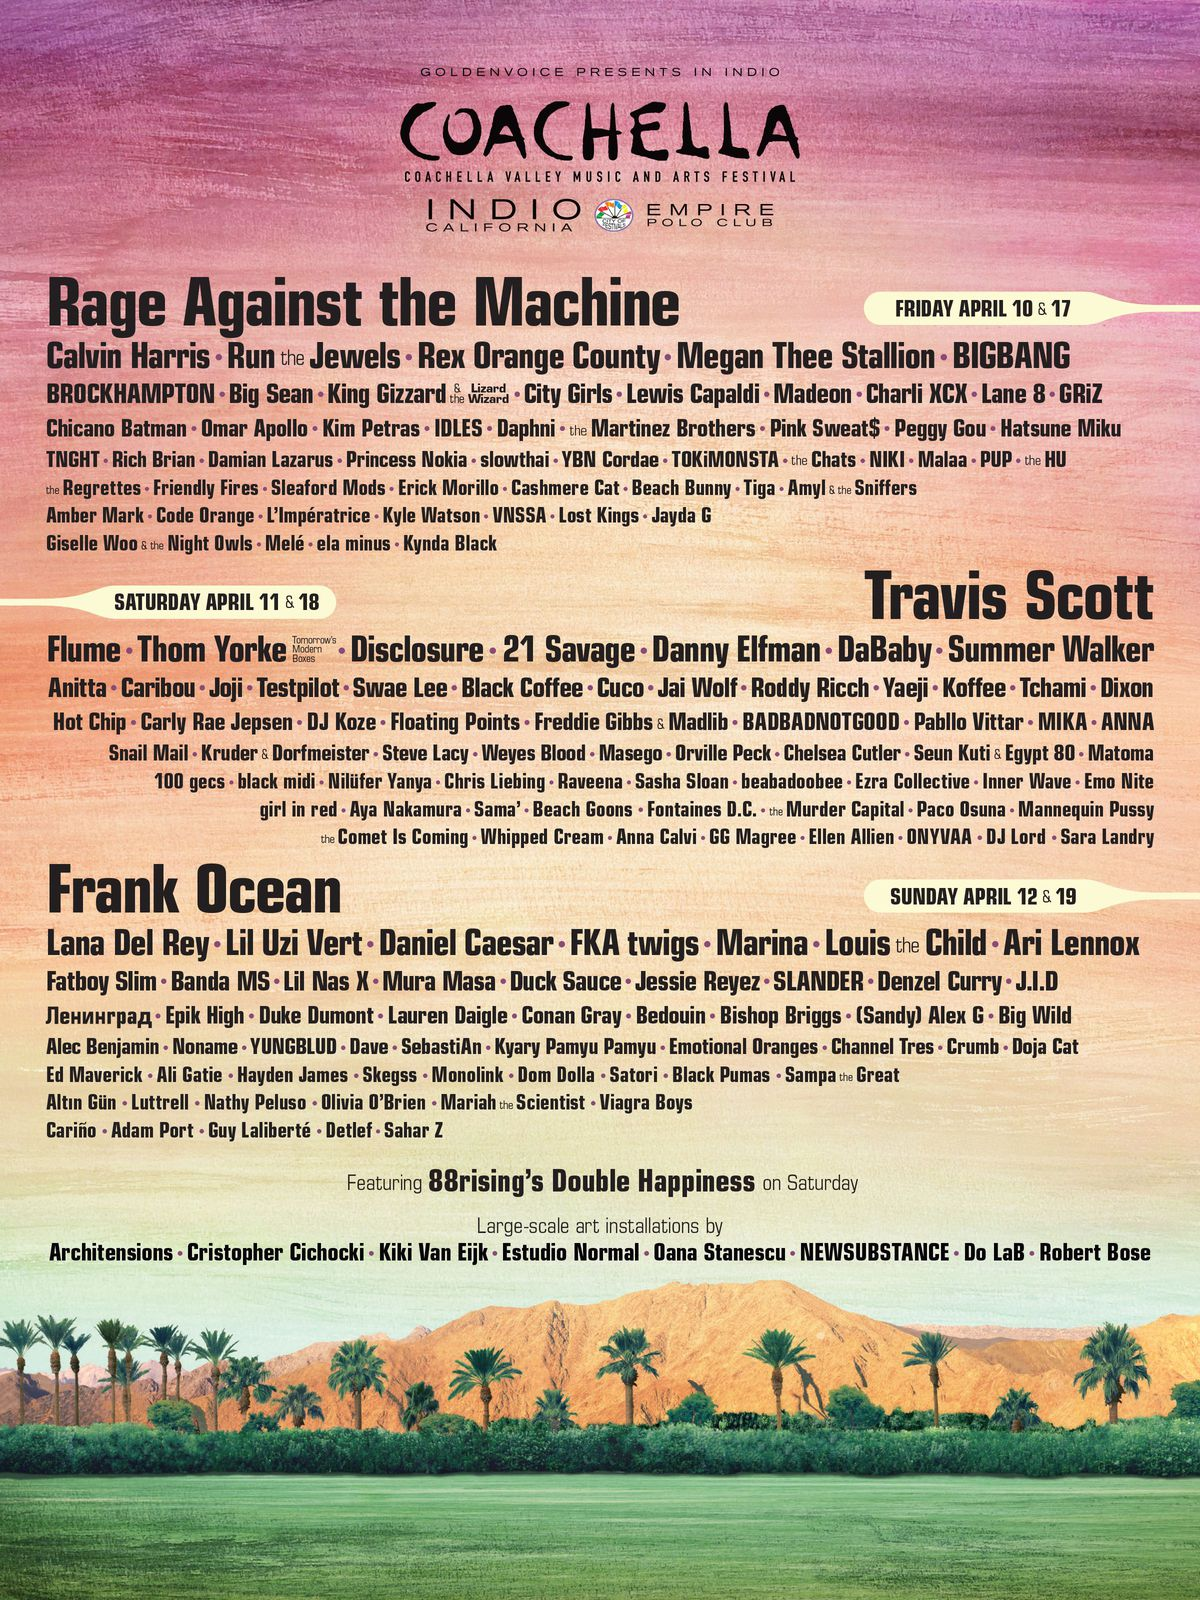 Coachella 2020 The Good The Bad And The Weird Of This Year S Lineup Vox